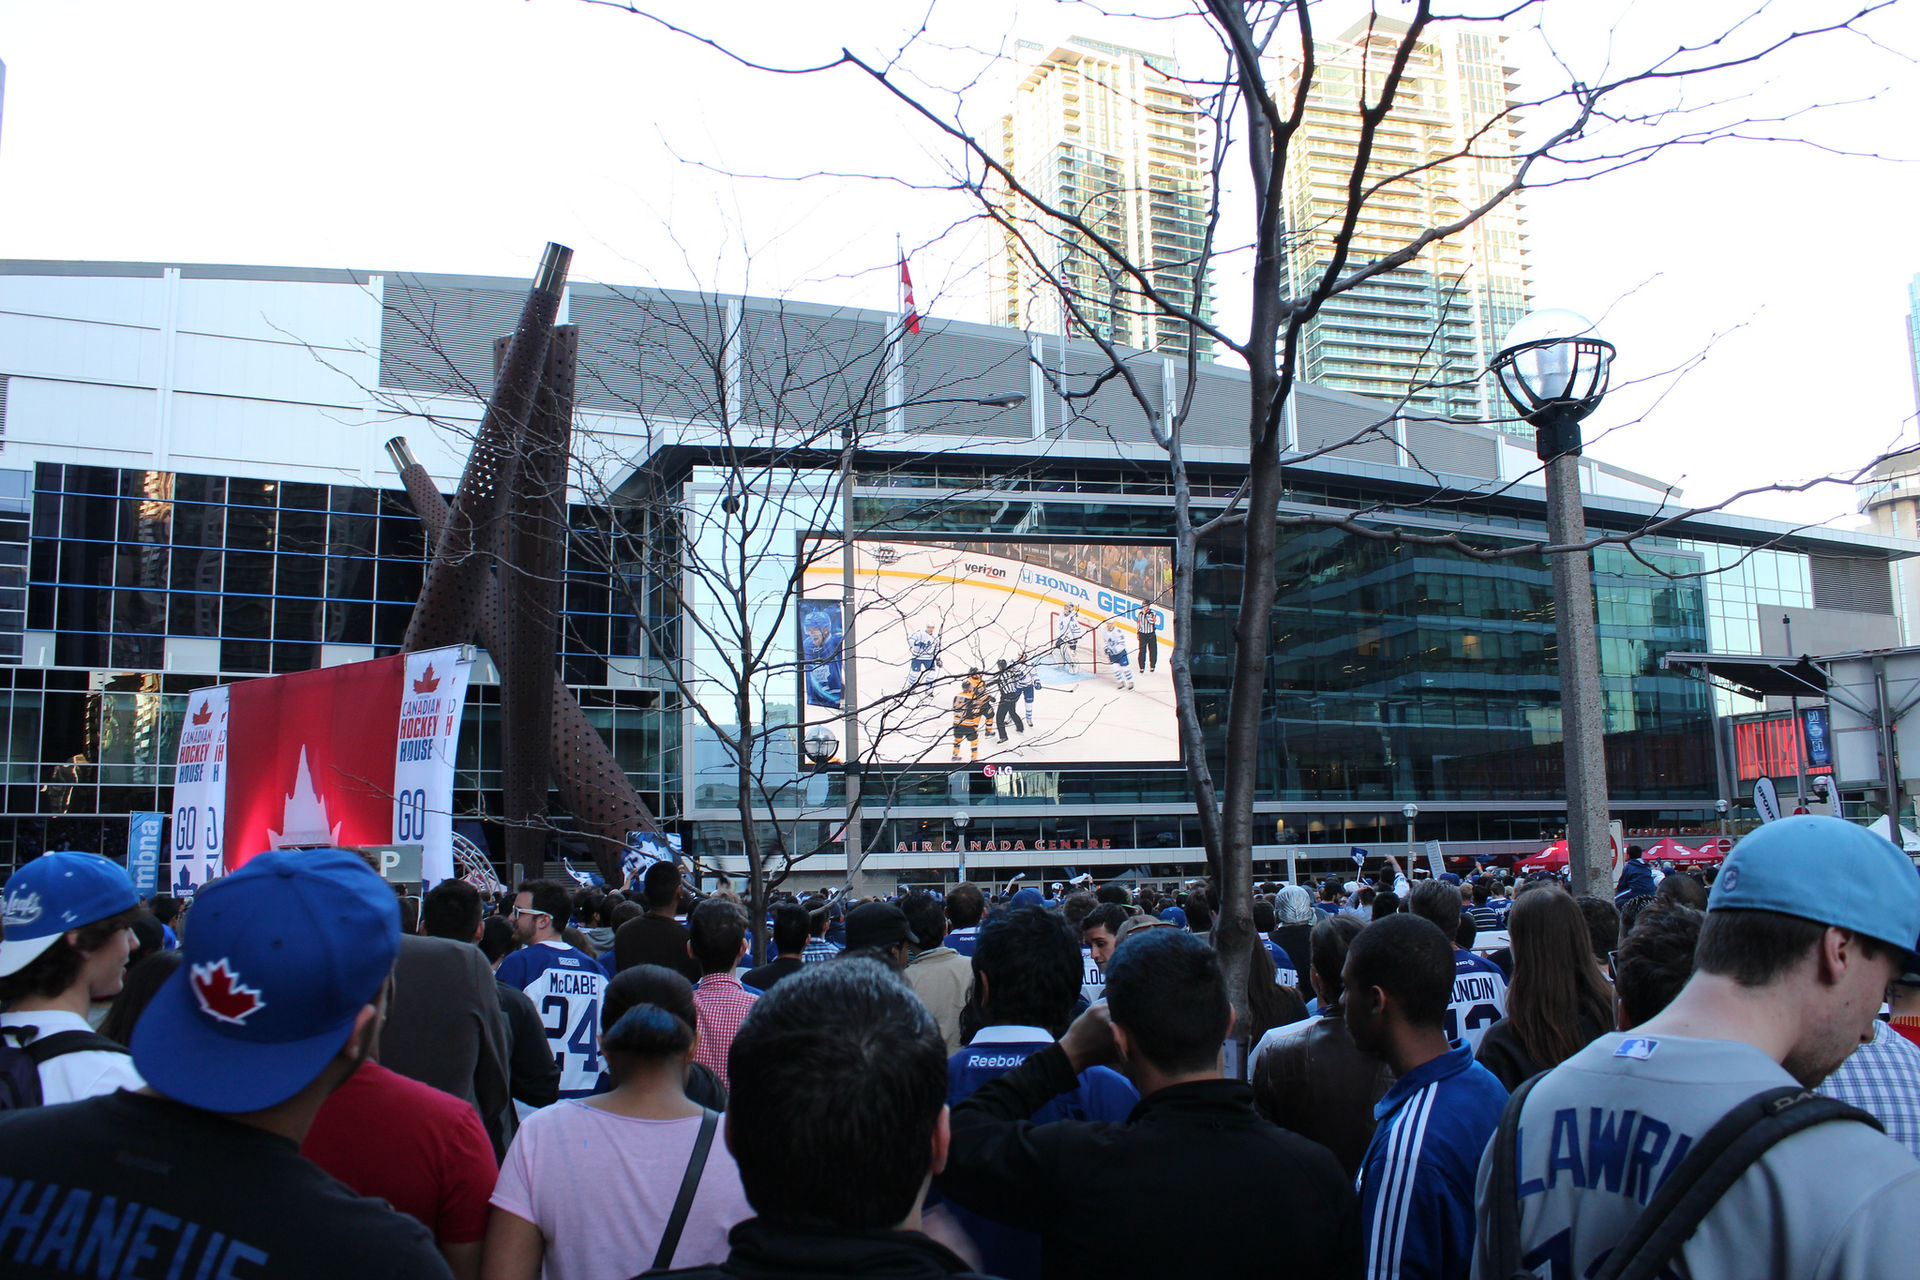 Toronto Maple Leafs fans watch Game 2 between the Leafs and the Boston Bruins in the NHL Eastern Conference Quarterfinals in 2013. (Photo courtesy KatieThebeau/ Wikimedia Commons )